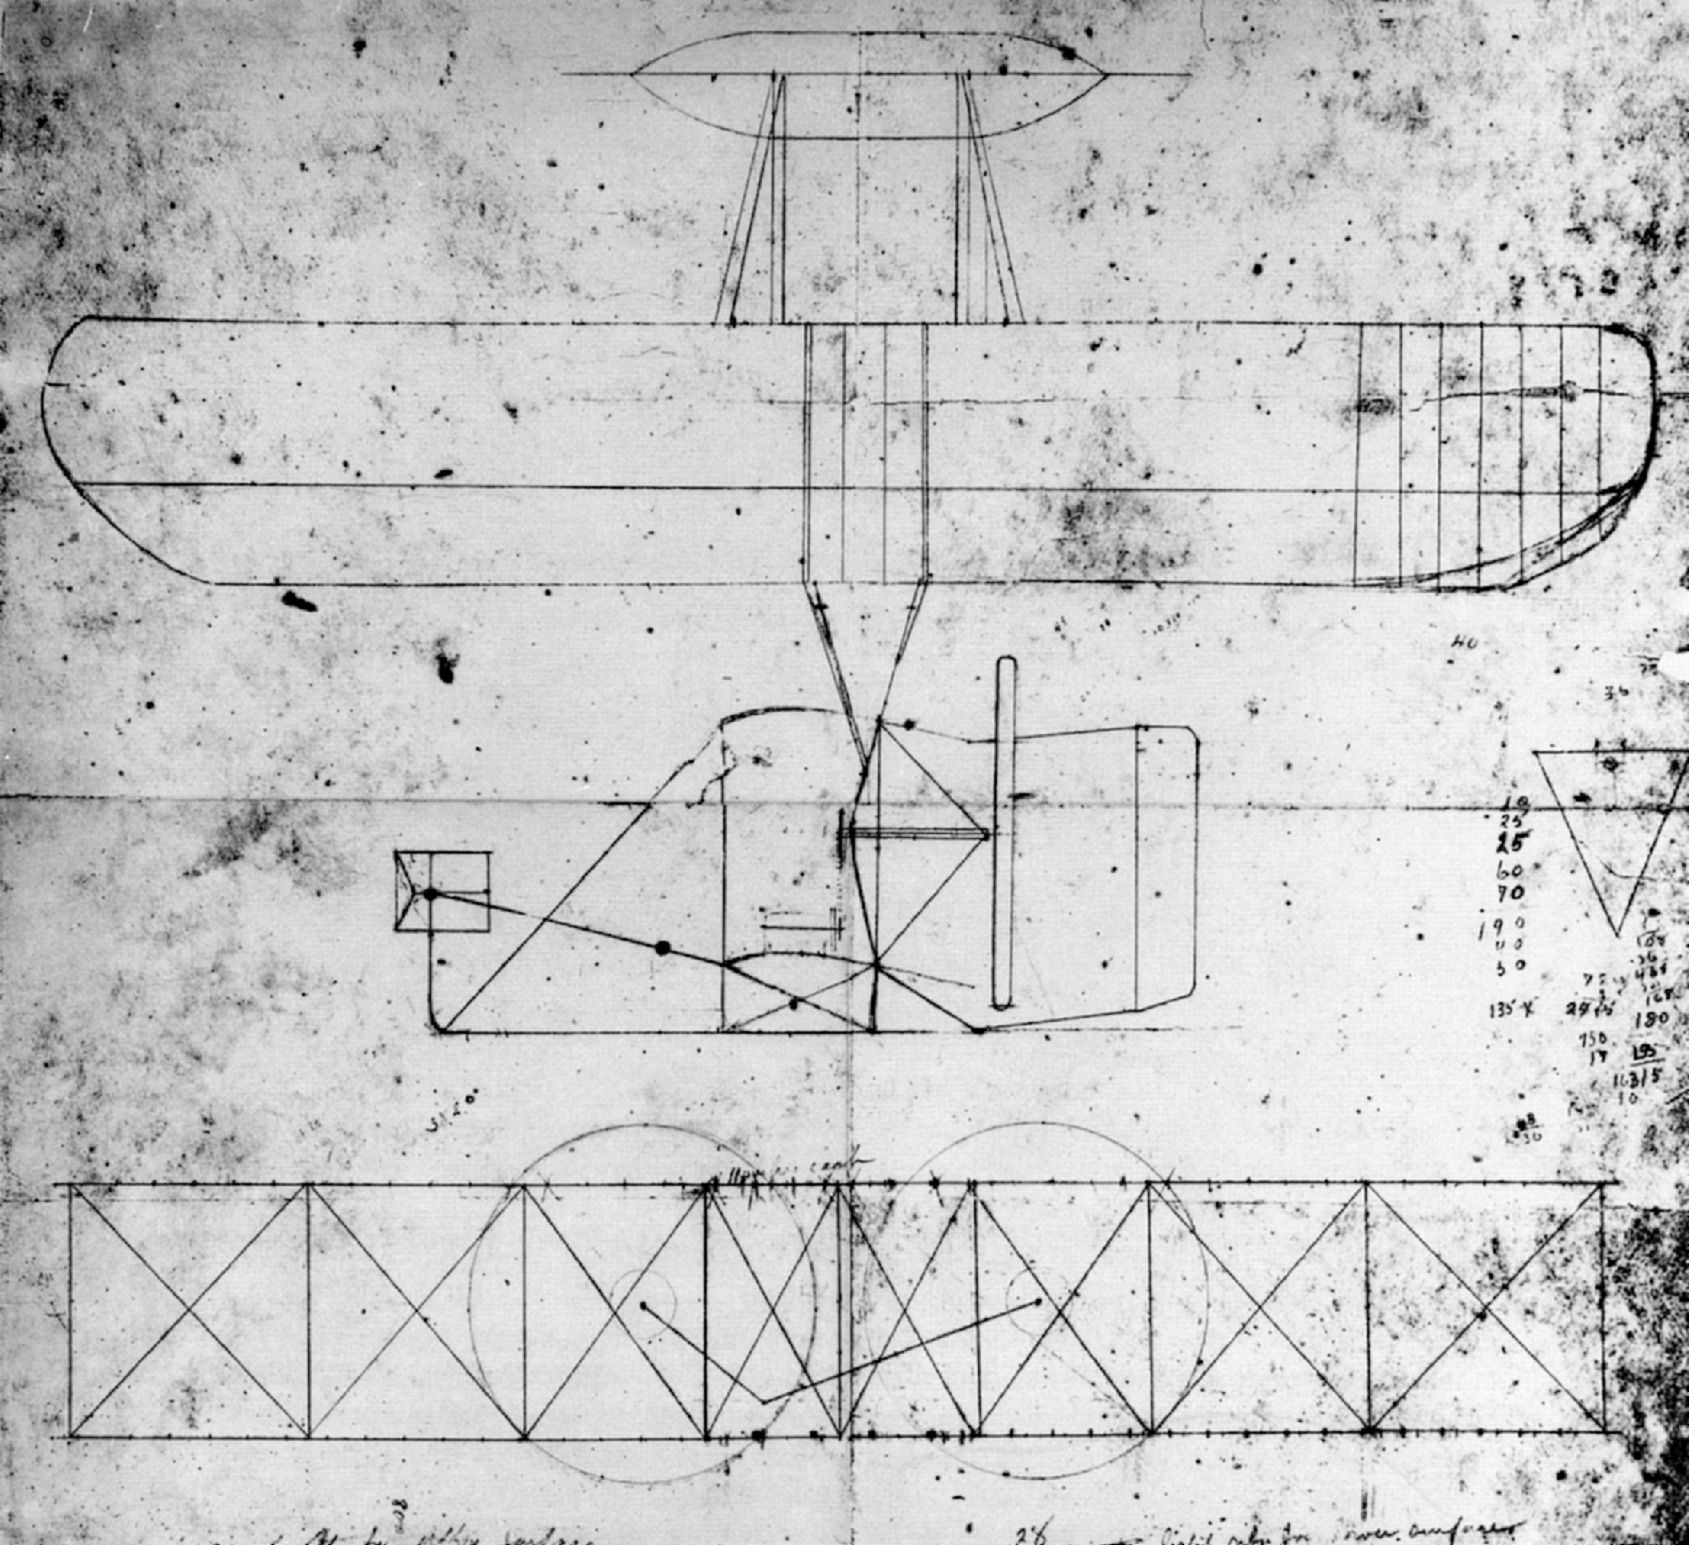 Wright brothers original drawing 1903 flyer google search could we cover the walls with either the blueprints or patent applications of inventions wright brothers sketch of the flyer 1903 malvernweather Images